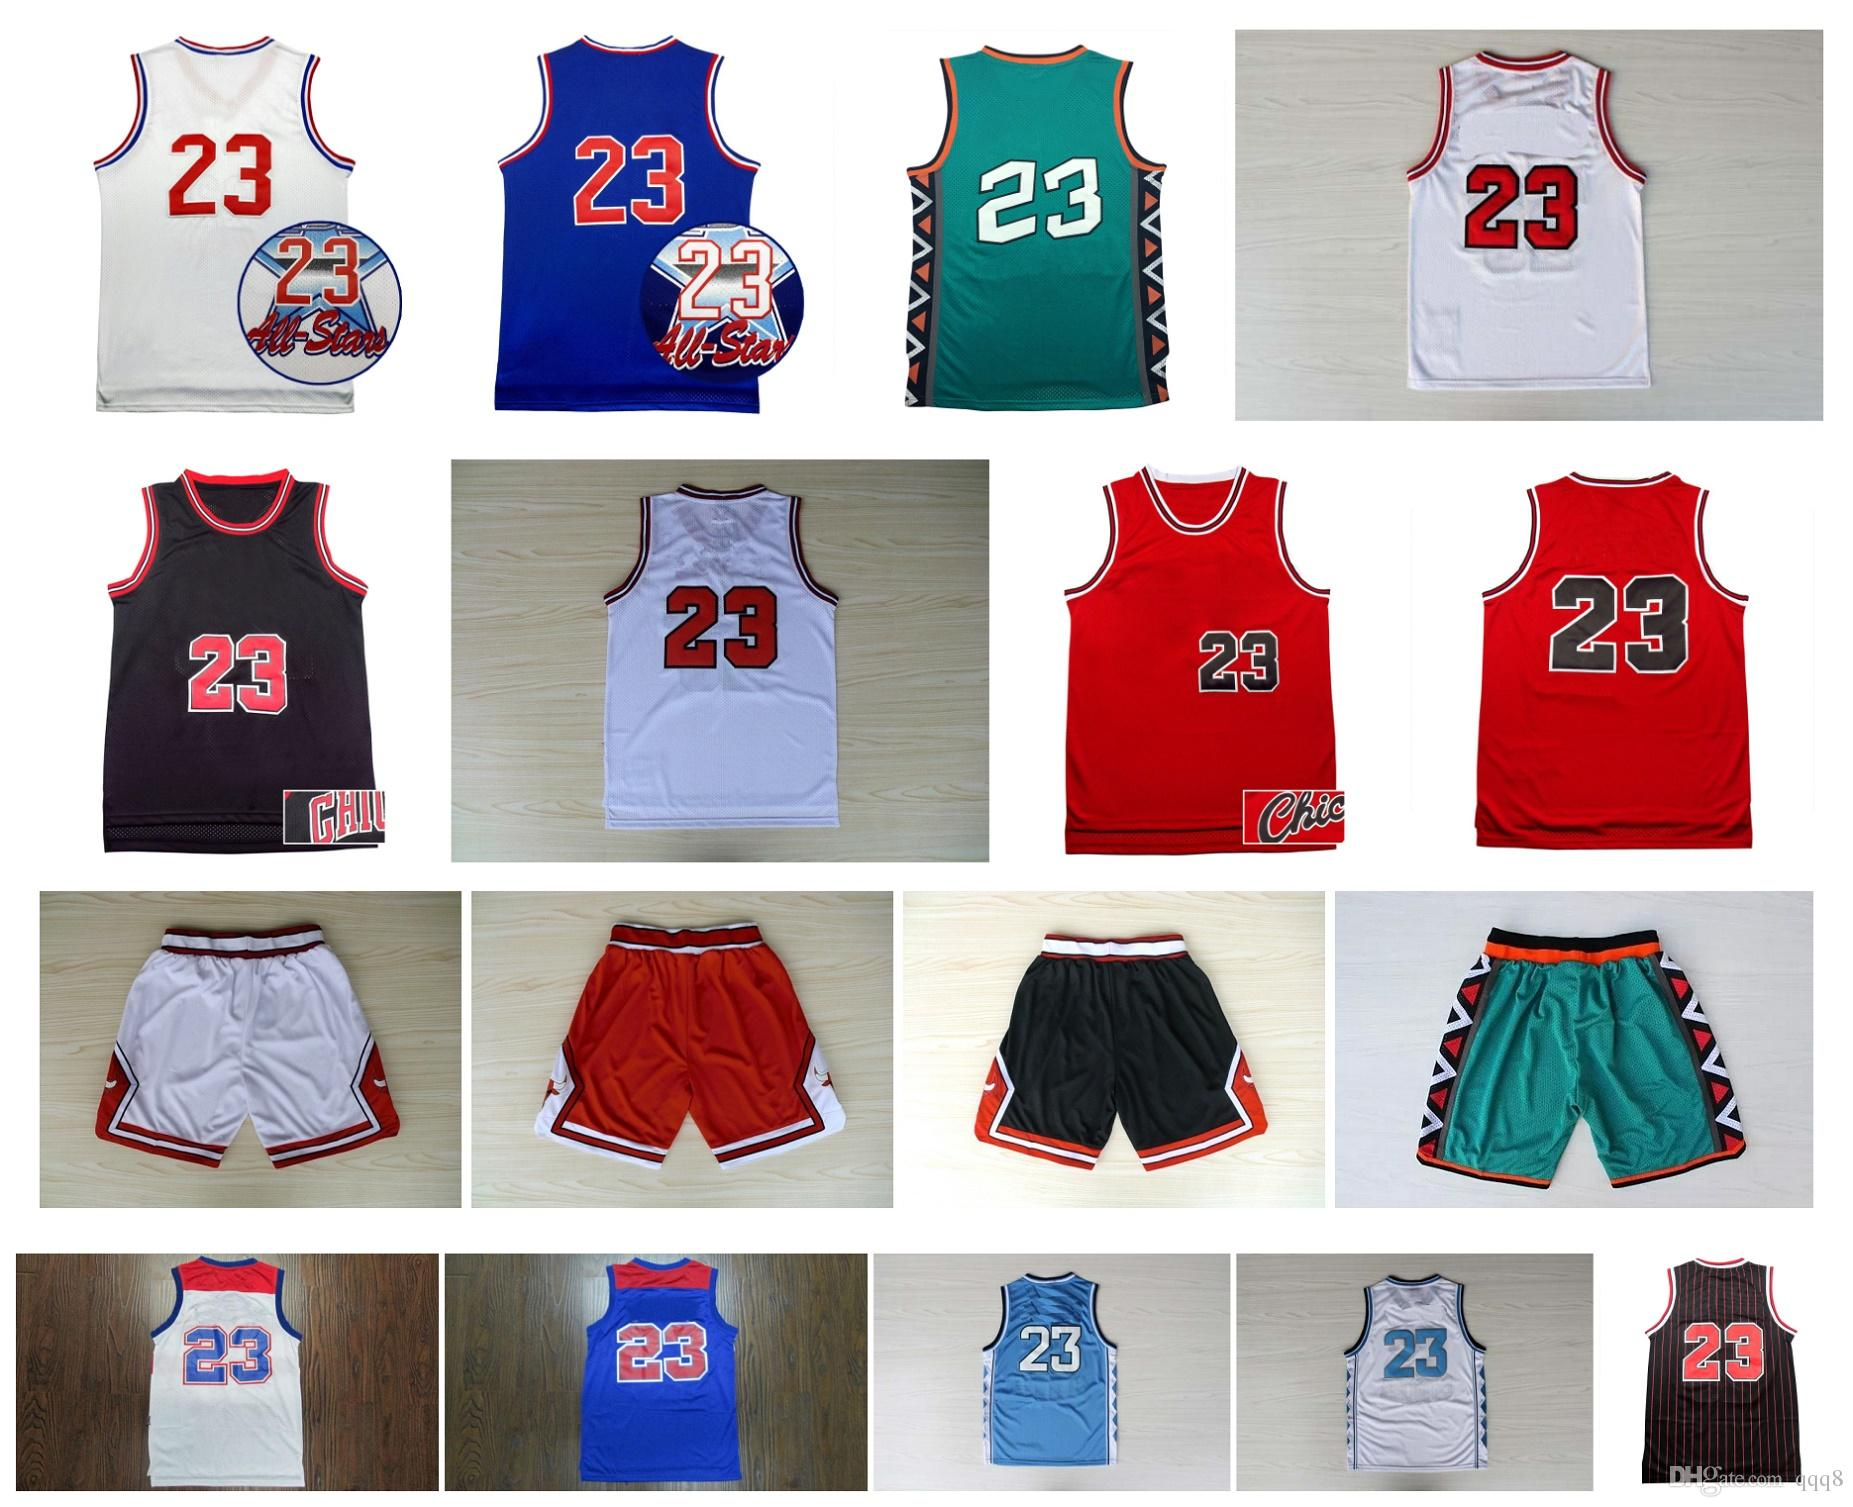 96 All Star Retro Basketball Shorts REV 30 Free Fast Shipping Size S NBA  Chicago Bulls 21 Jimmy Butler Authentic Red Jersey 33 Scottie Pippen Jersey fe9202608